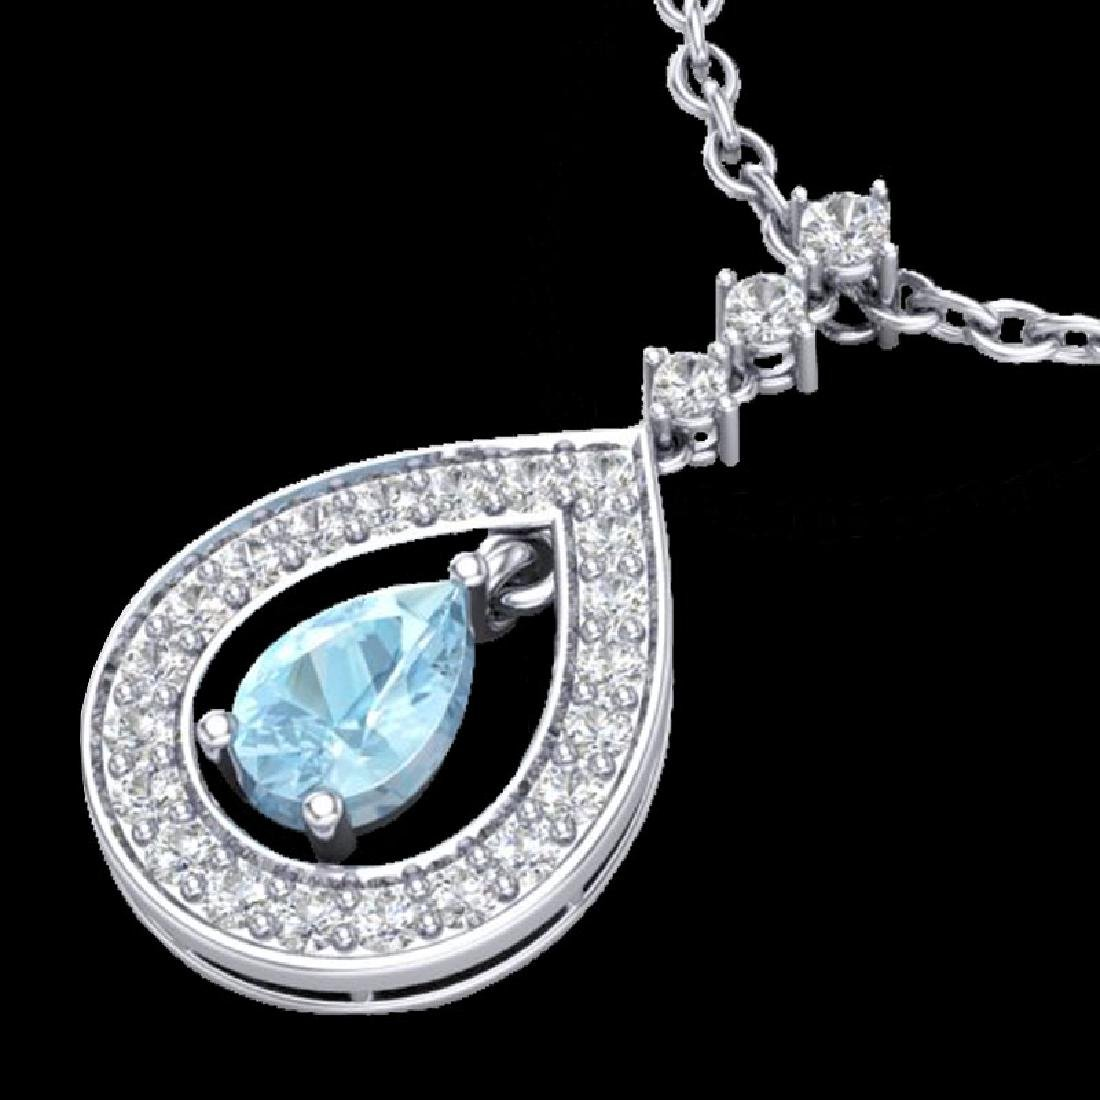 1.15 CTW Aquamarine & Micro Pave VS/SI Diamond Necklace